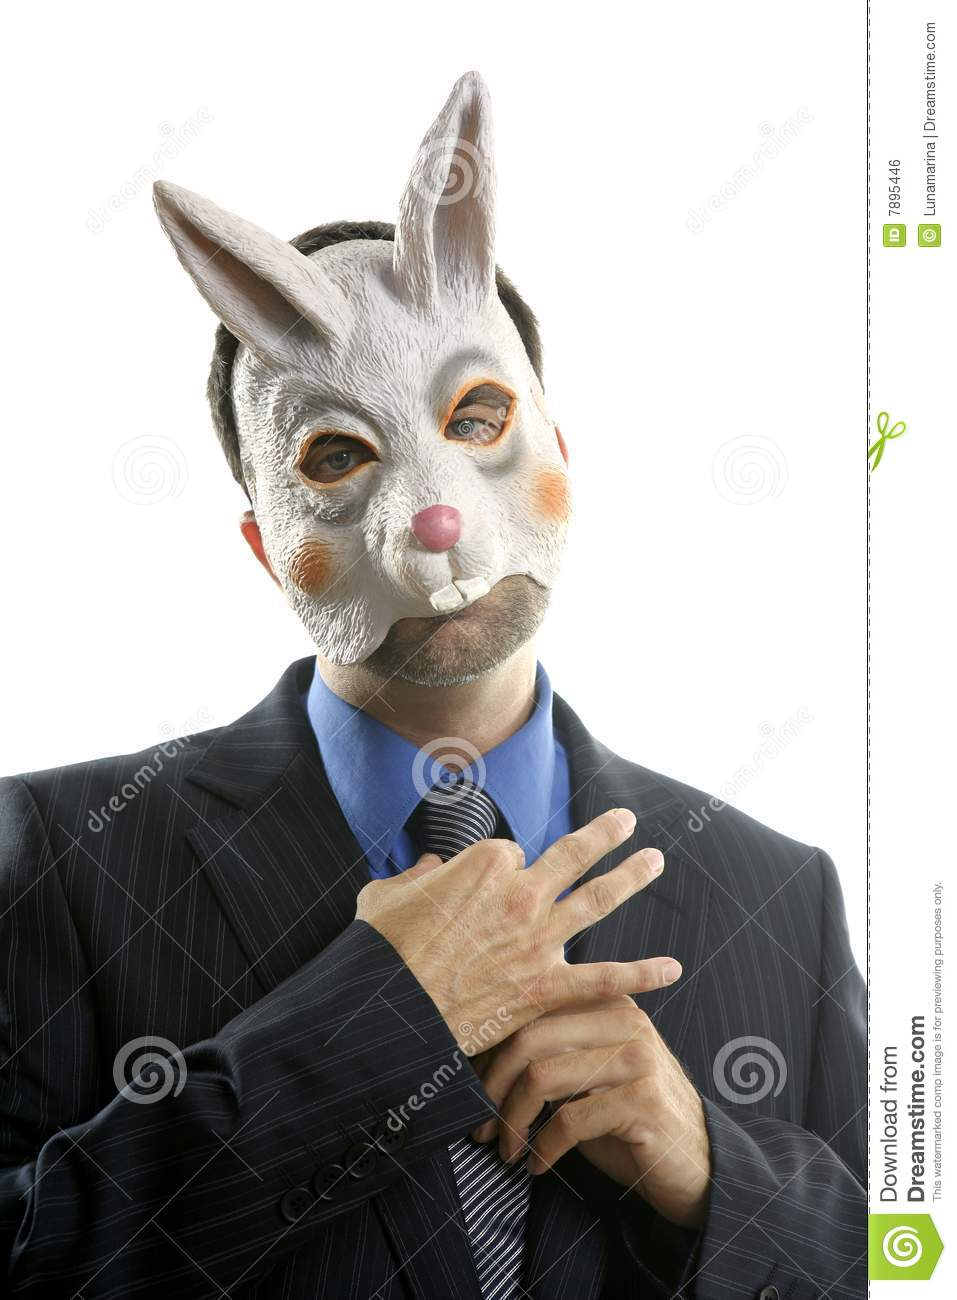 Businessman With Funny Rabbit Mask Royalty Free Stock Image ...